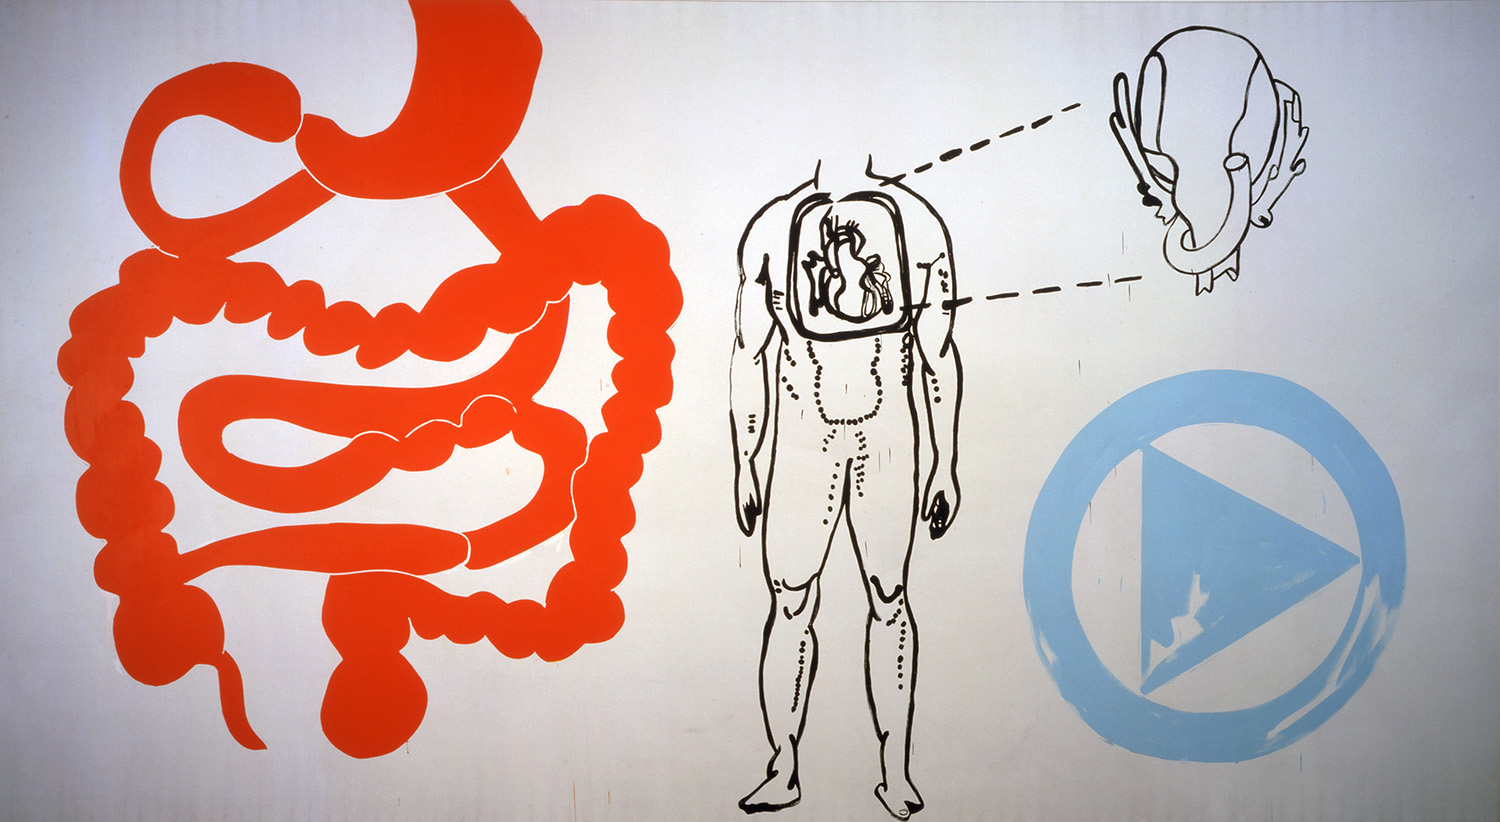 Andy Warhol, Physiological Diagram, 1985. © The Andy Warhol Foundation for the Visual Arts, Inc.